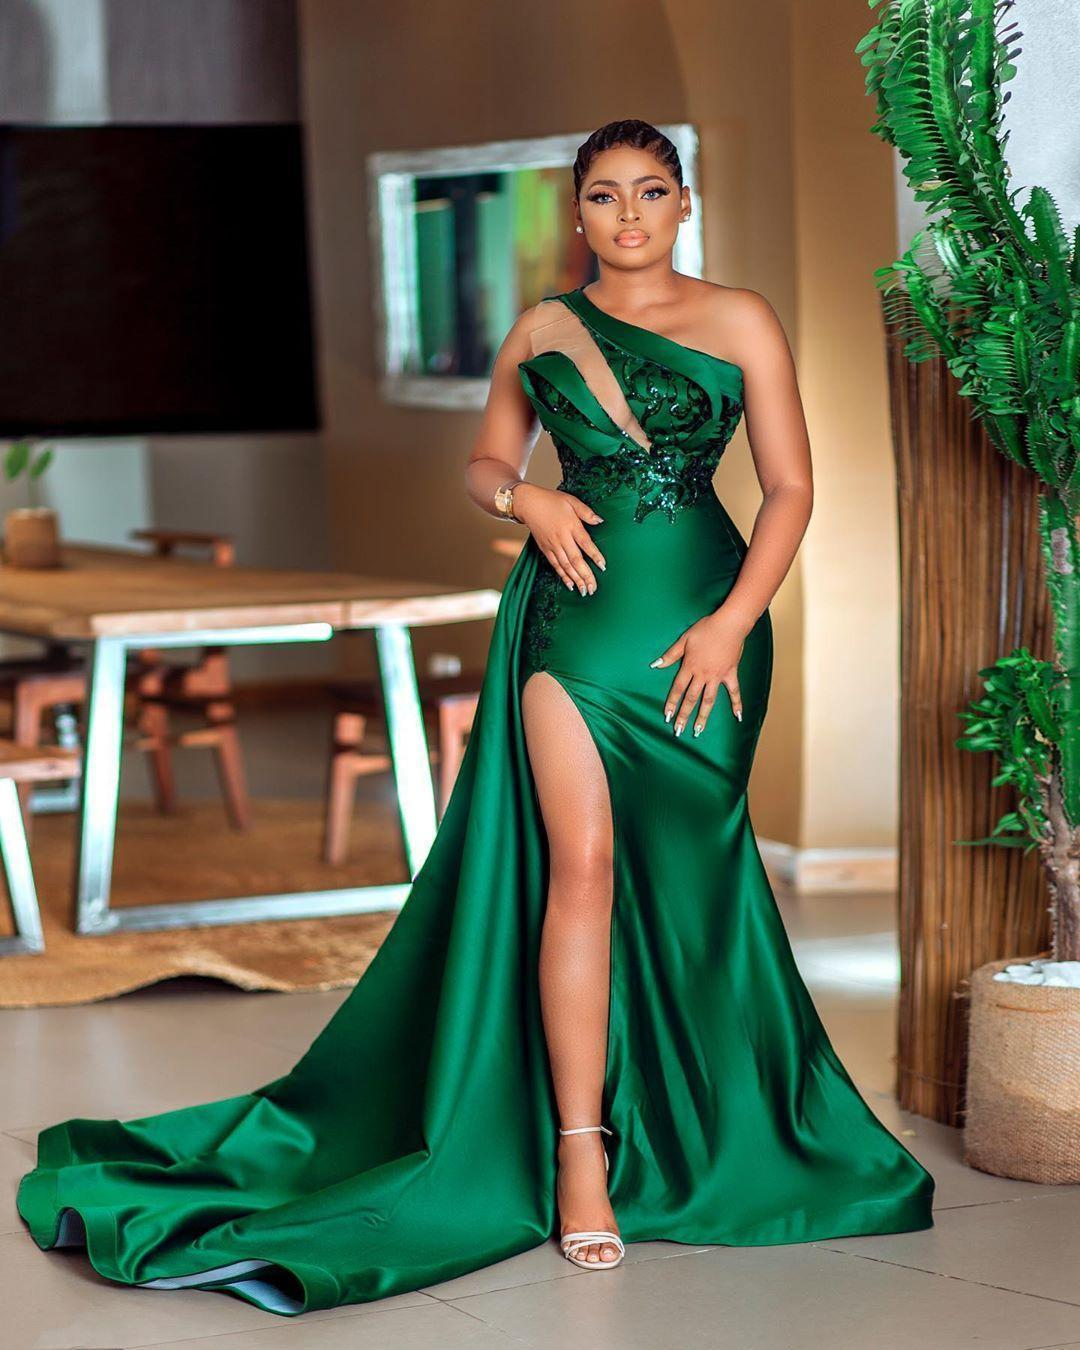 2021 Arabic Sexy Dark Green Mermaid Prom Dresses One Shoulder Illusion Sequined Lace Appliques Side Split Satin Sweep Train Aso Ebi Evening Gowns Vestidos Plus Size